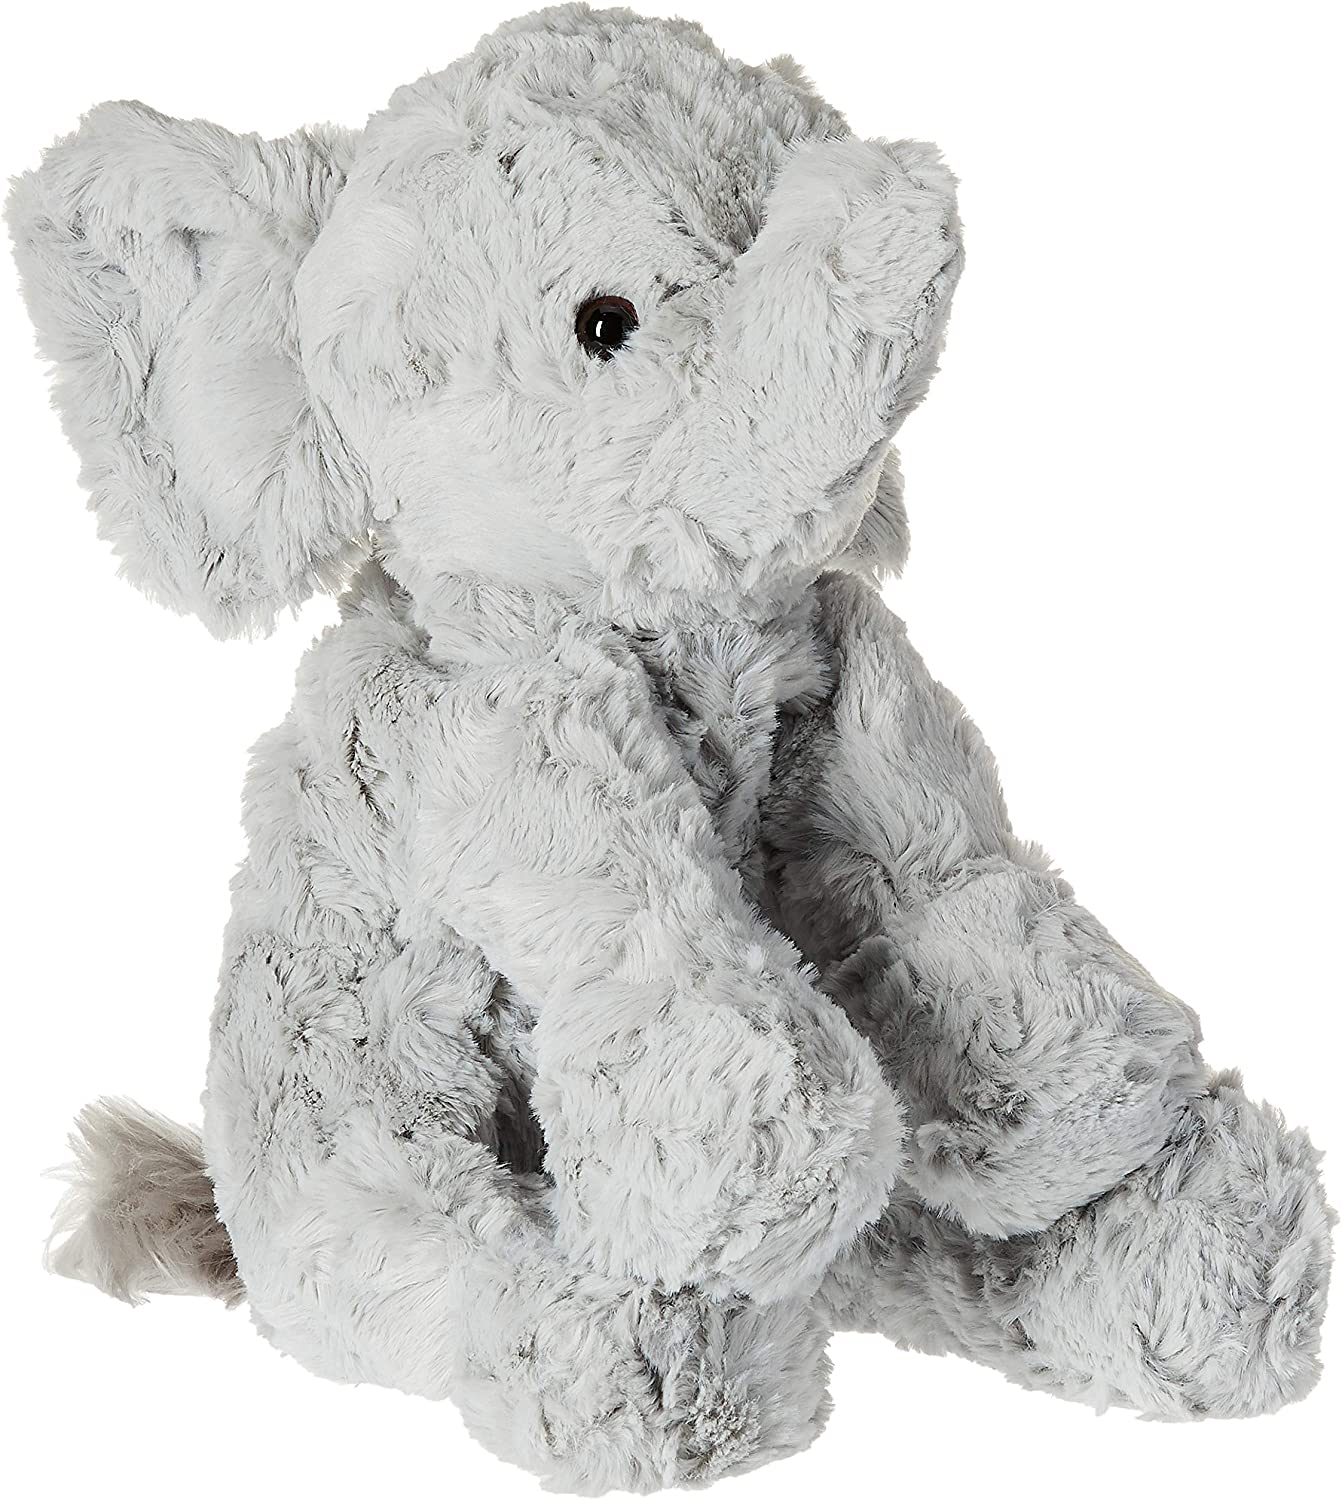 GUND Cozys Collection Elephant Stuffed Animal Plush, Gray, 10""